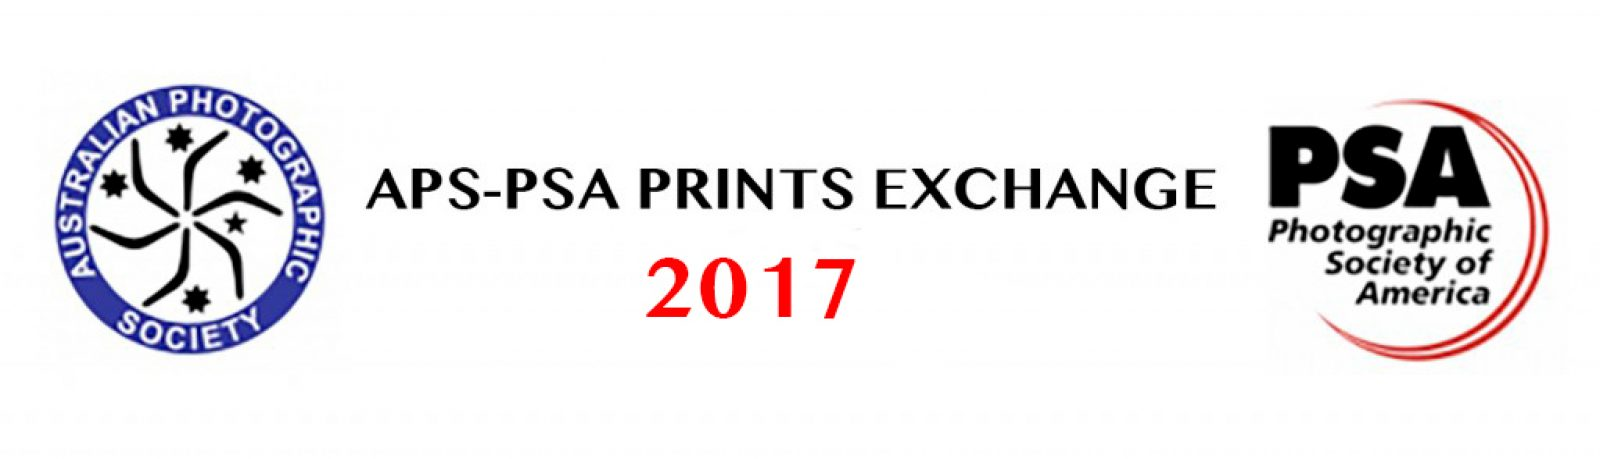 APS – PSA Prints Exchange 2017